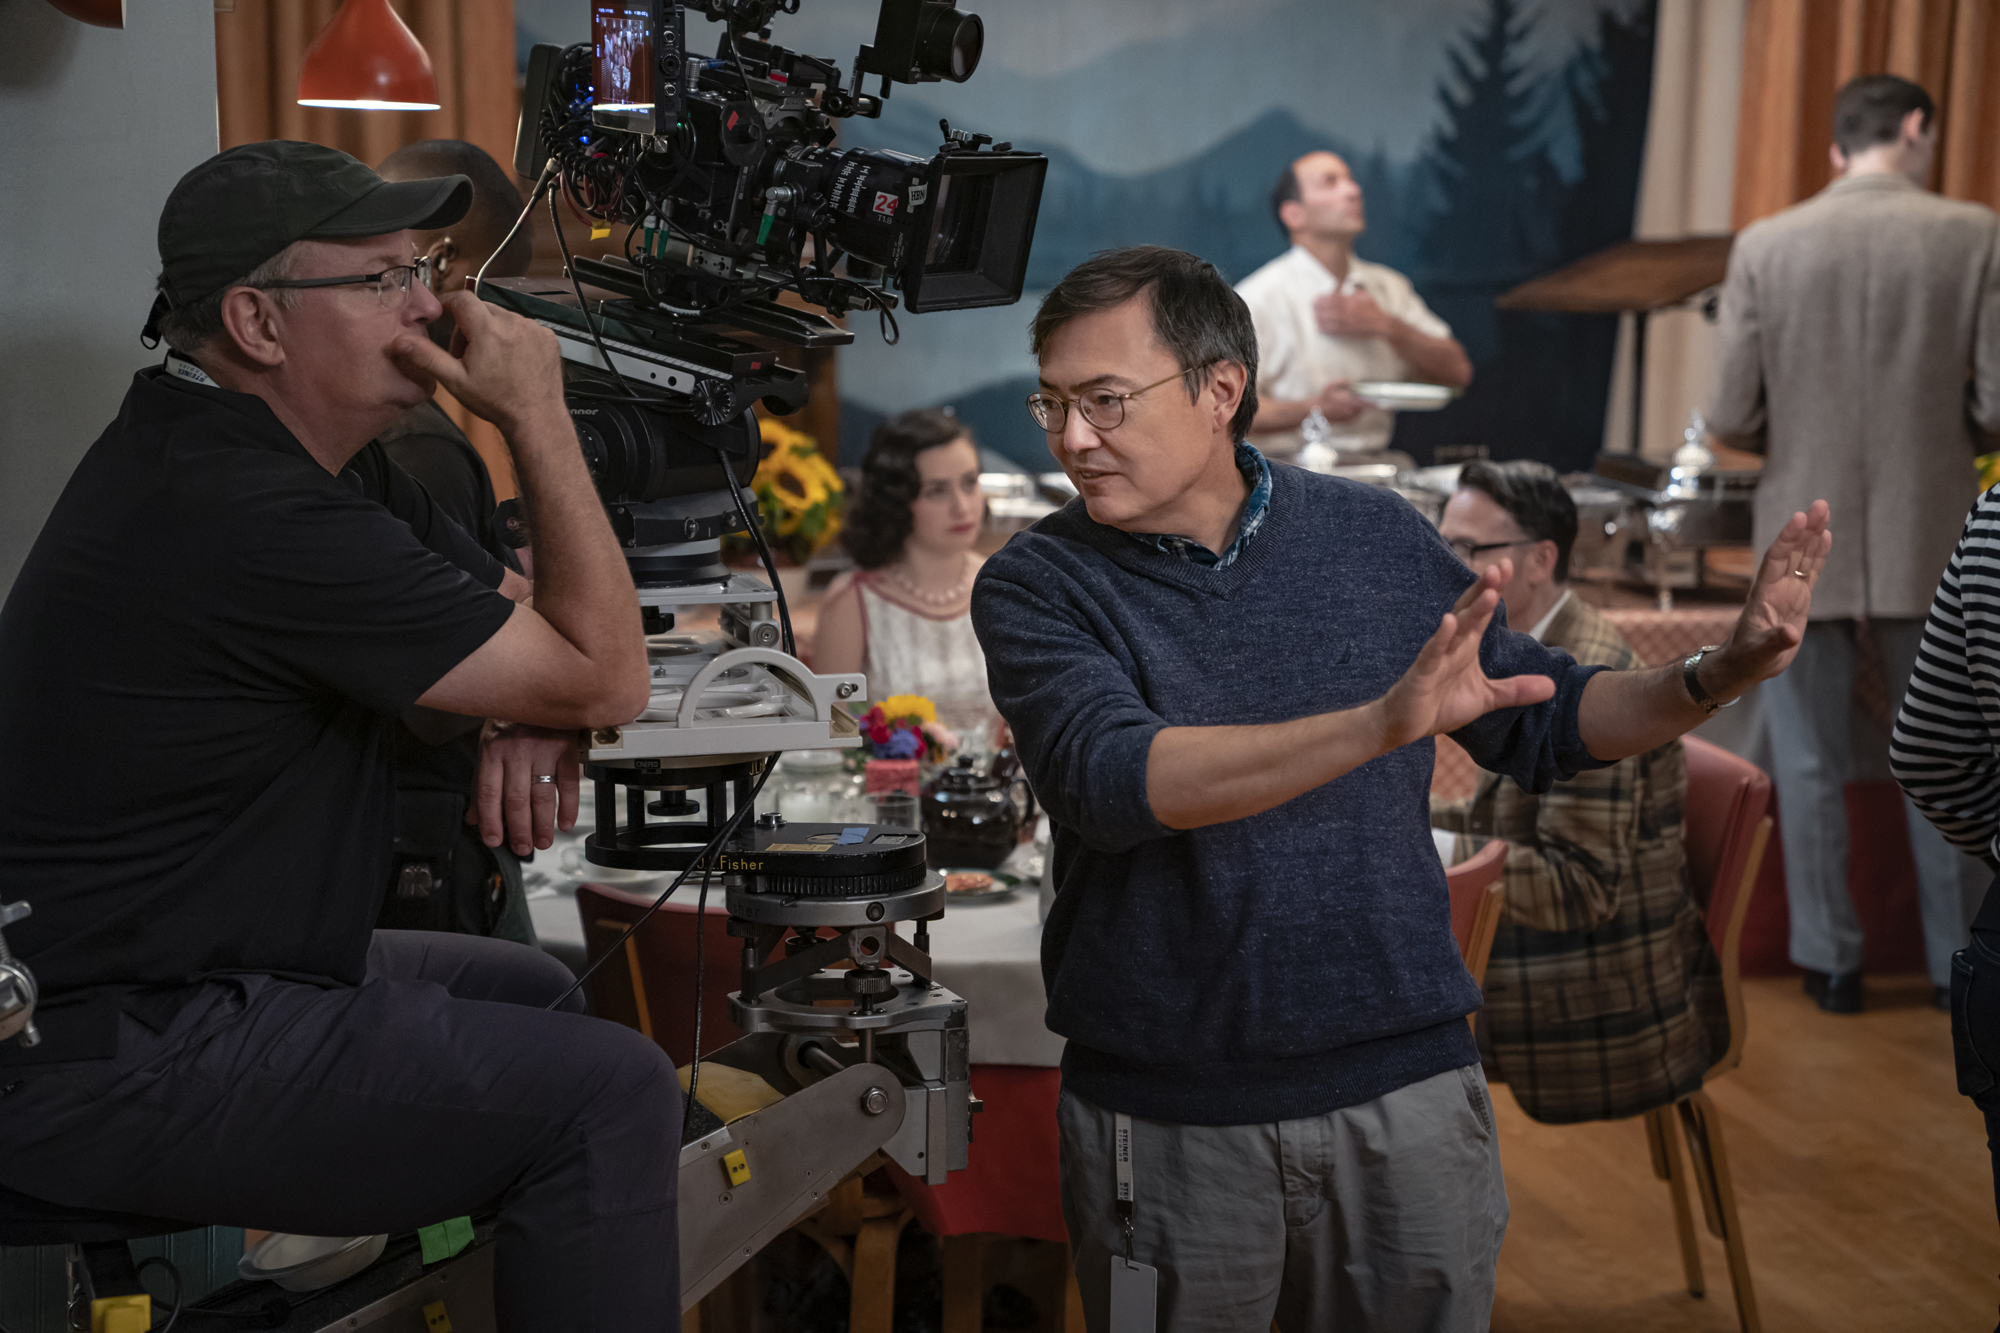 M. David Mullen ASC has been nominated for <em>The Marvelous Mrs. Maisel</em>. Credit: Nicole Rivelli